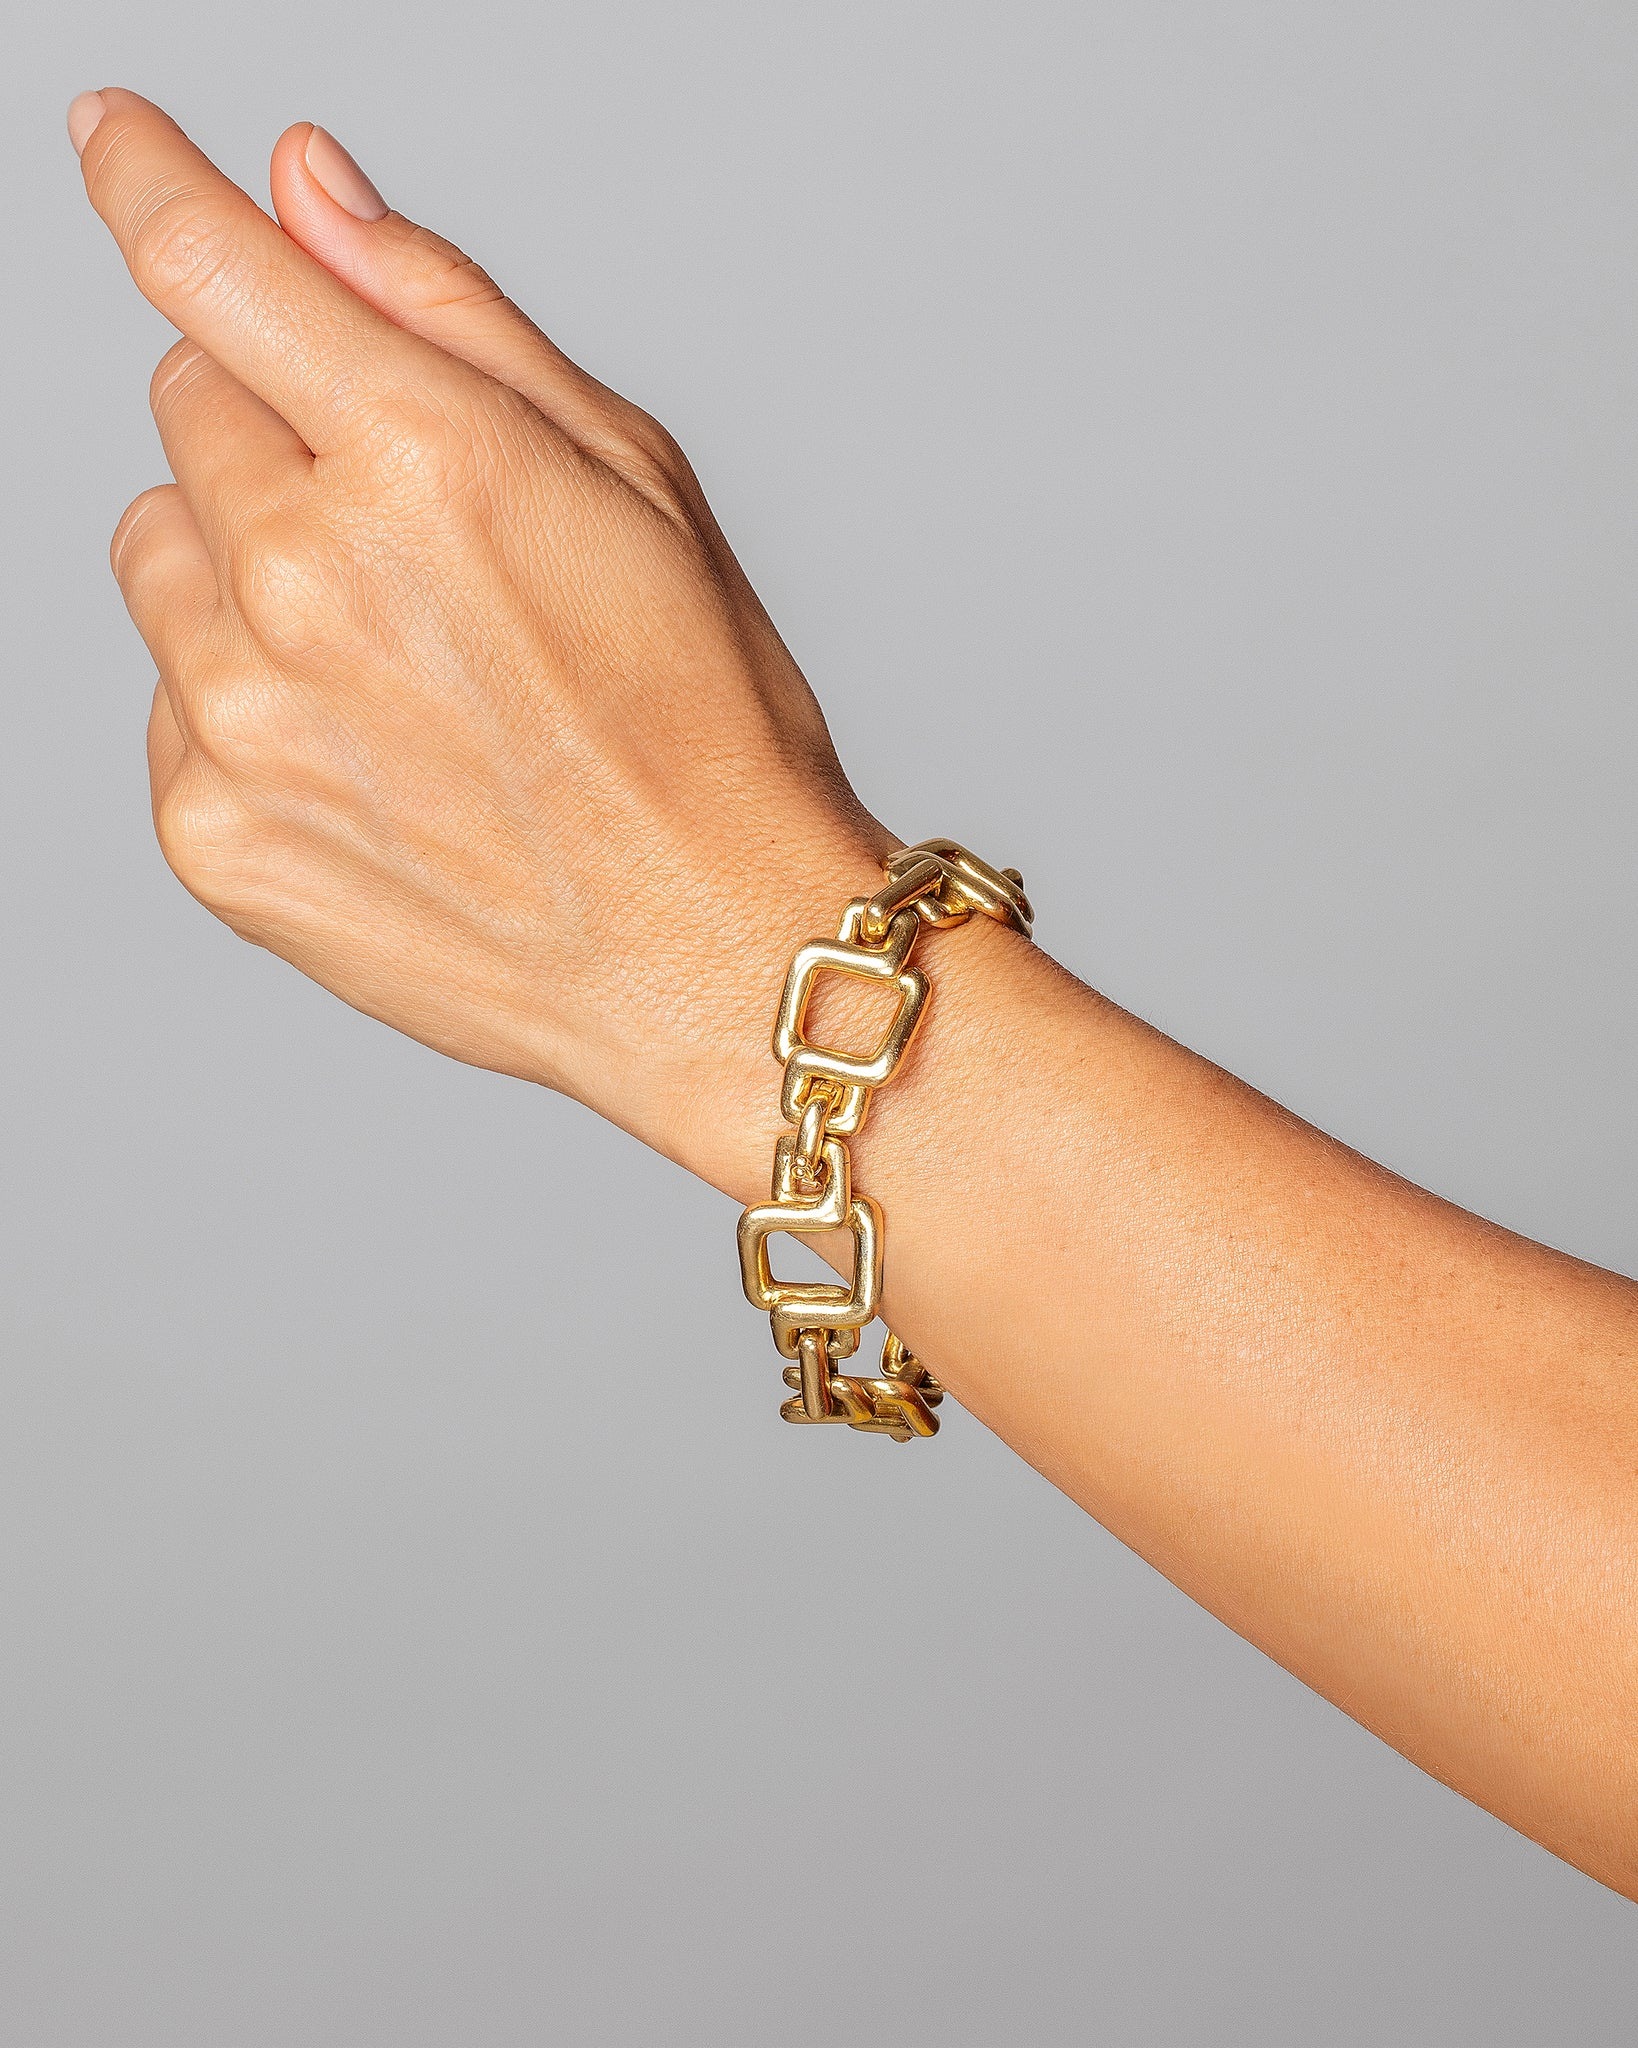 1960s Cartier Bracelet worn on model